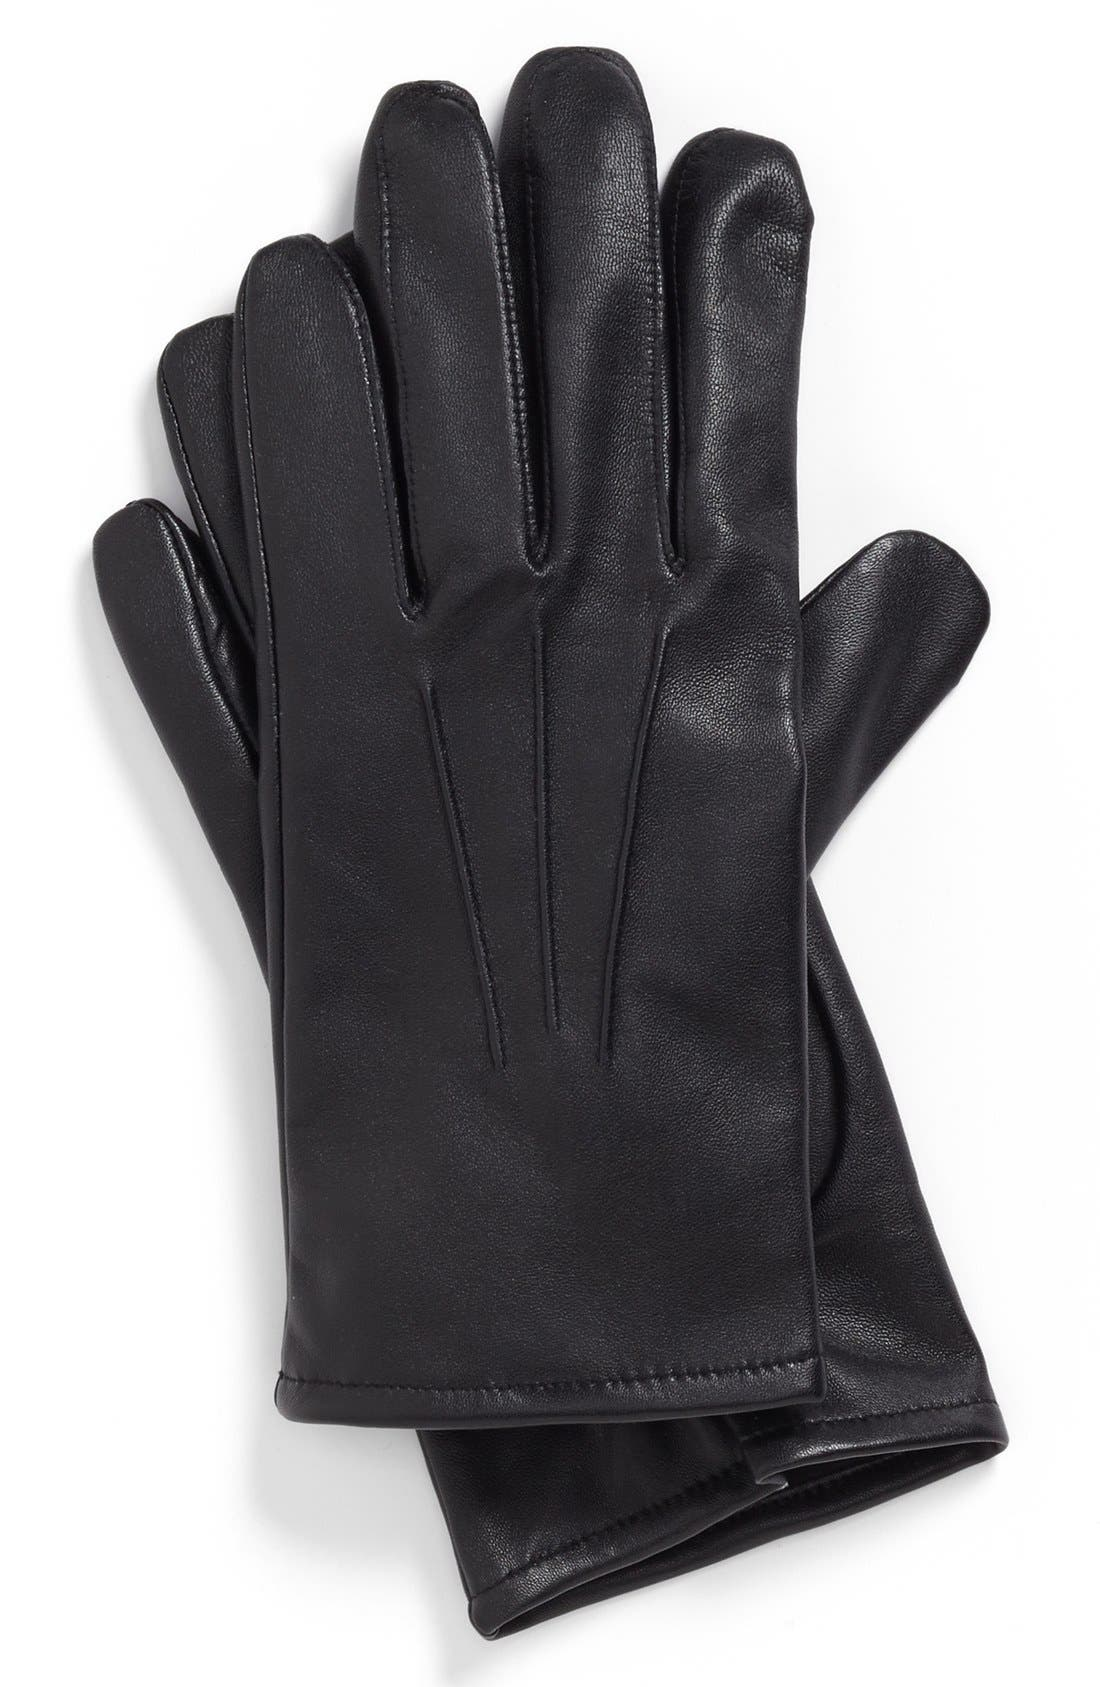 Main Image - John W. Nordstrom® Nappa Leather Gloves